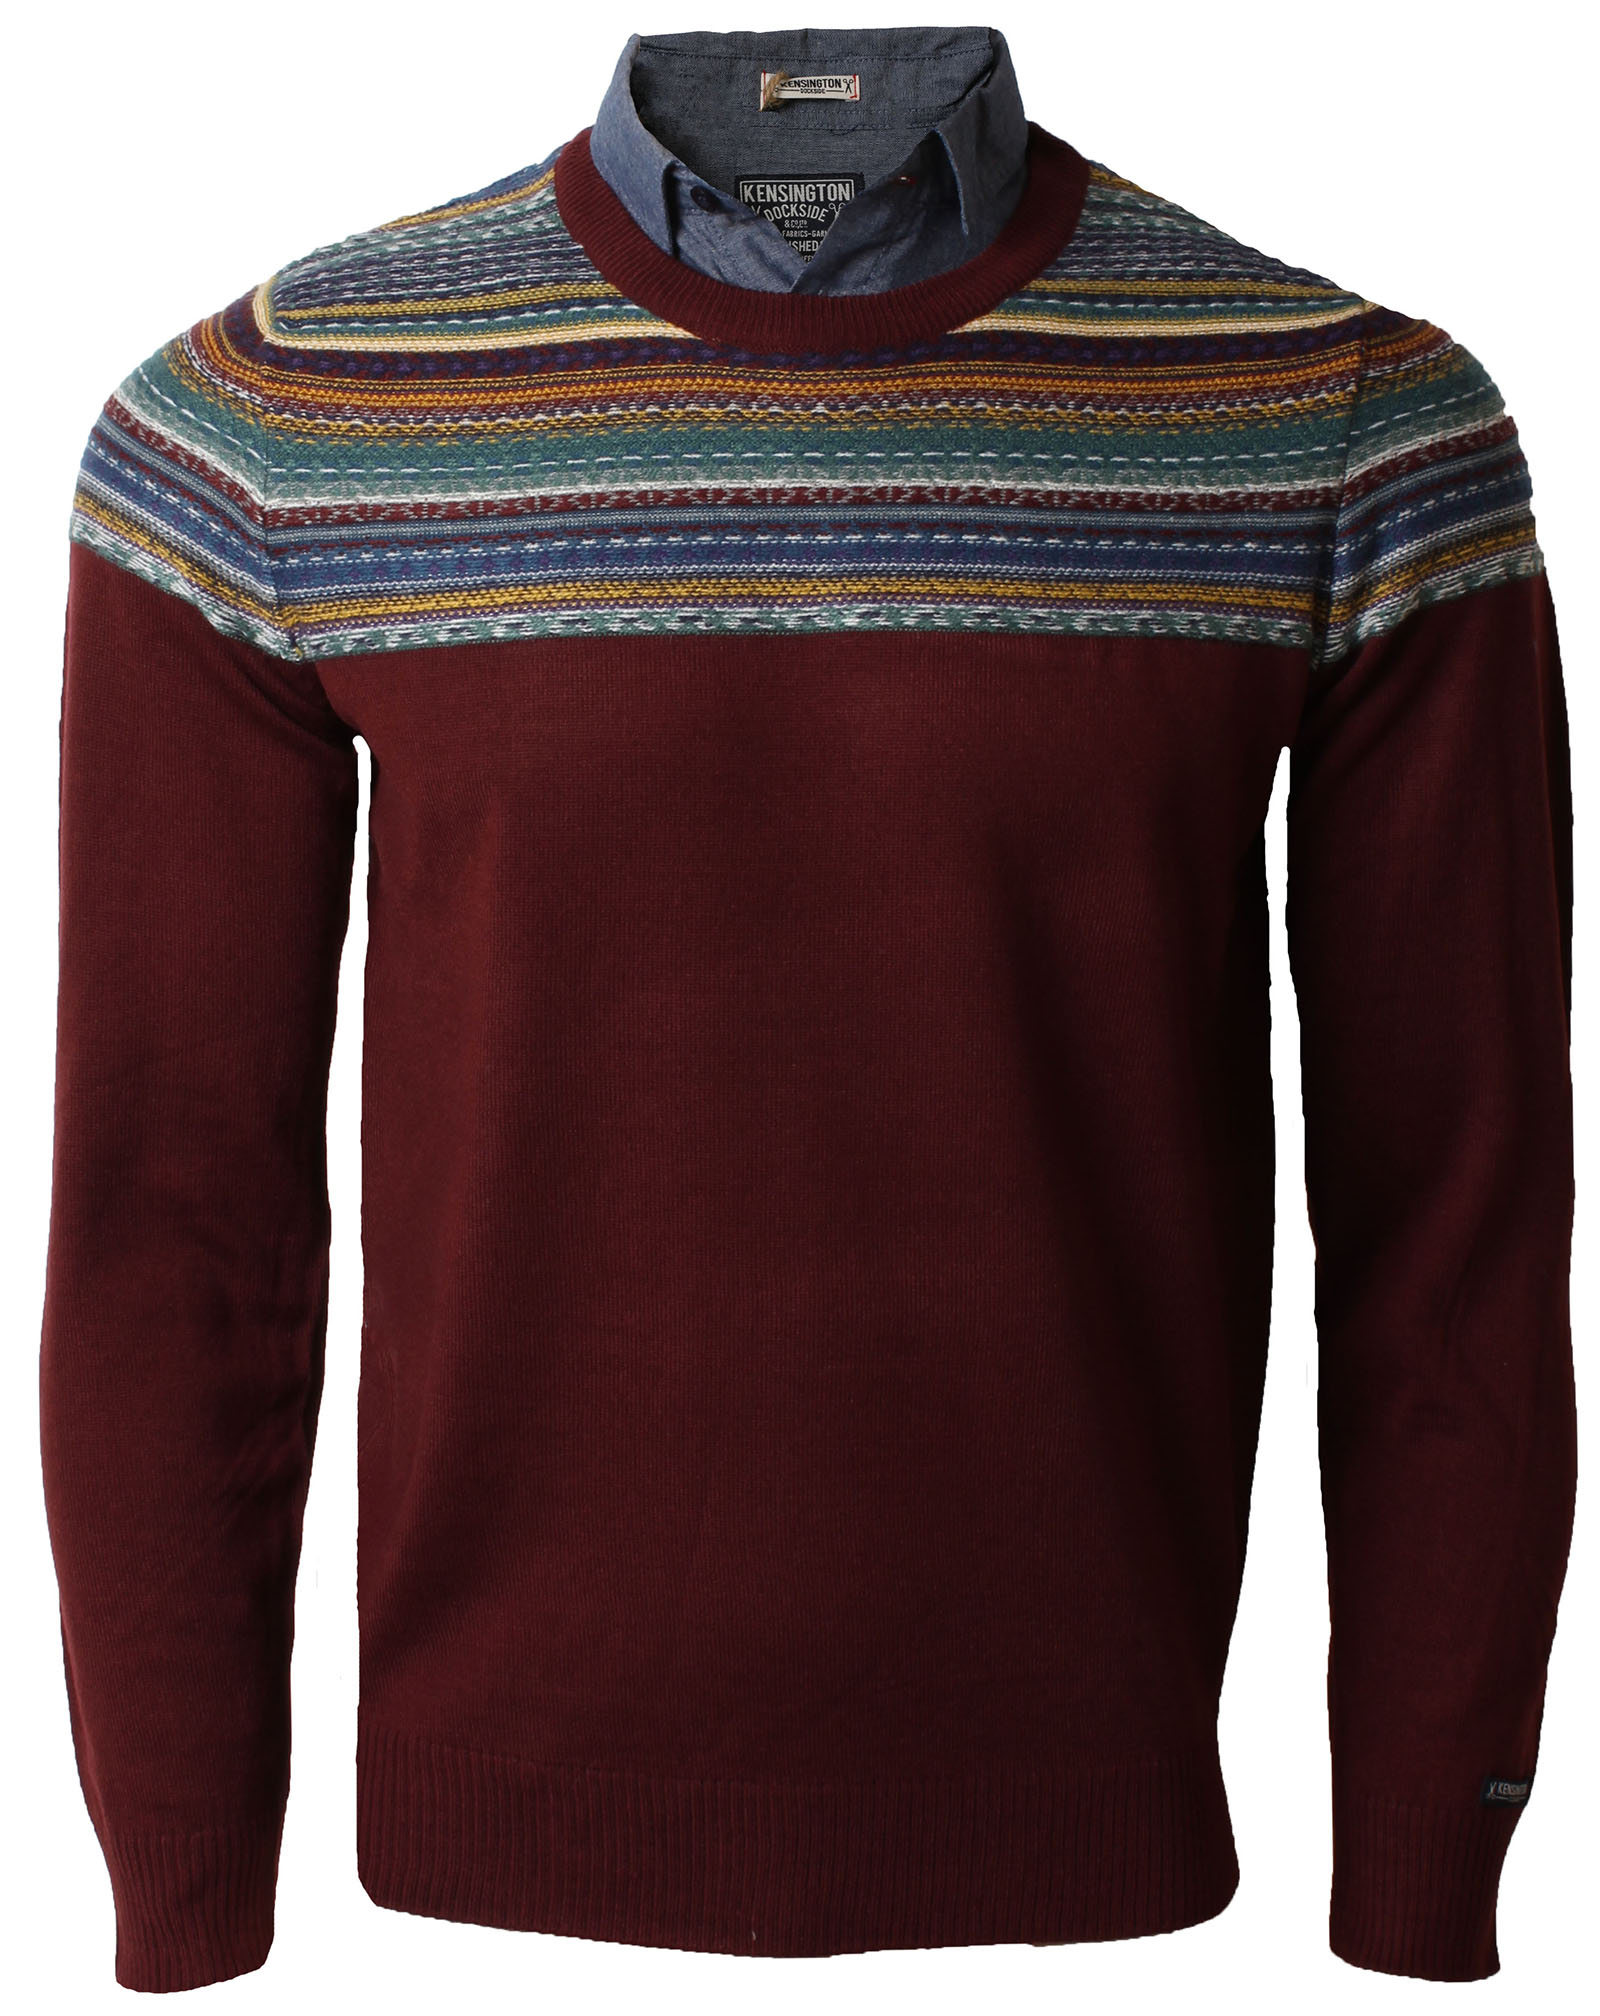 Kensington mens shirt collar insert crew neck nordic for Crew neck sweater with collared shirt